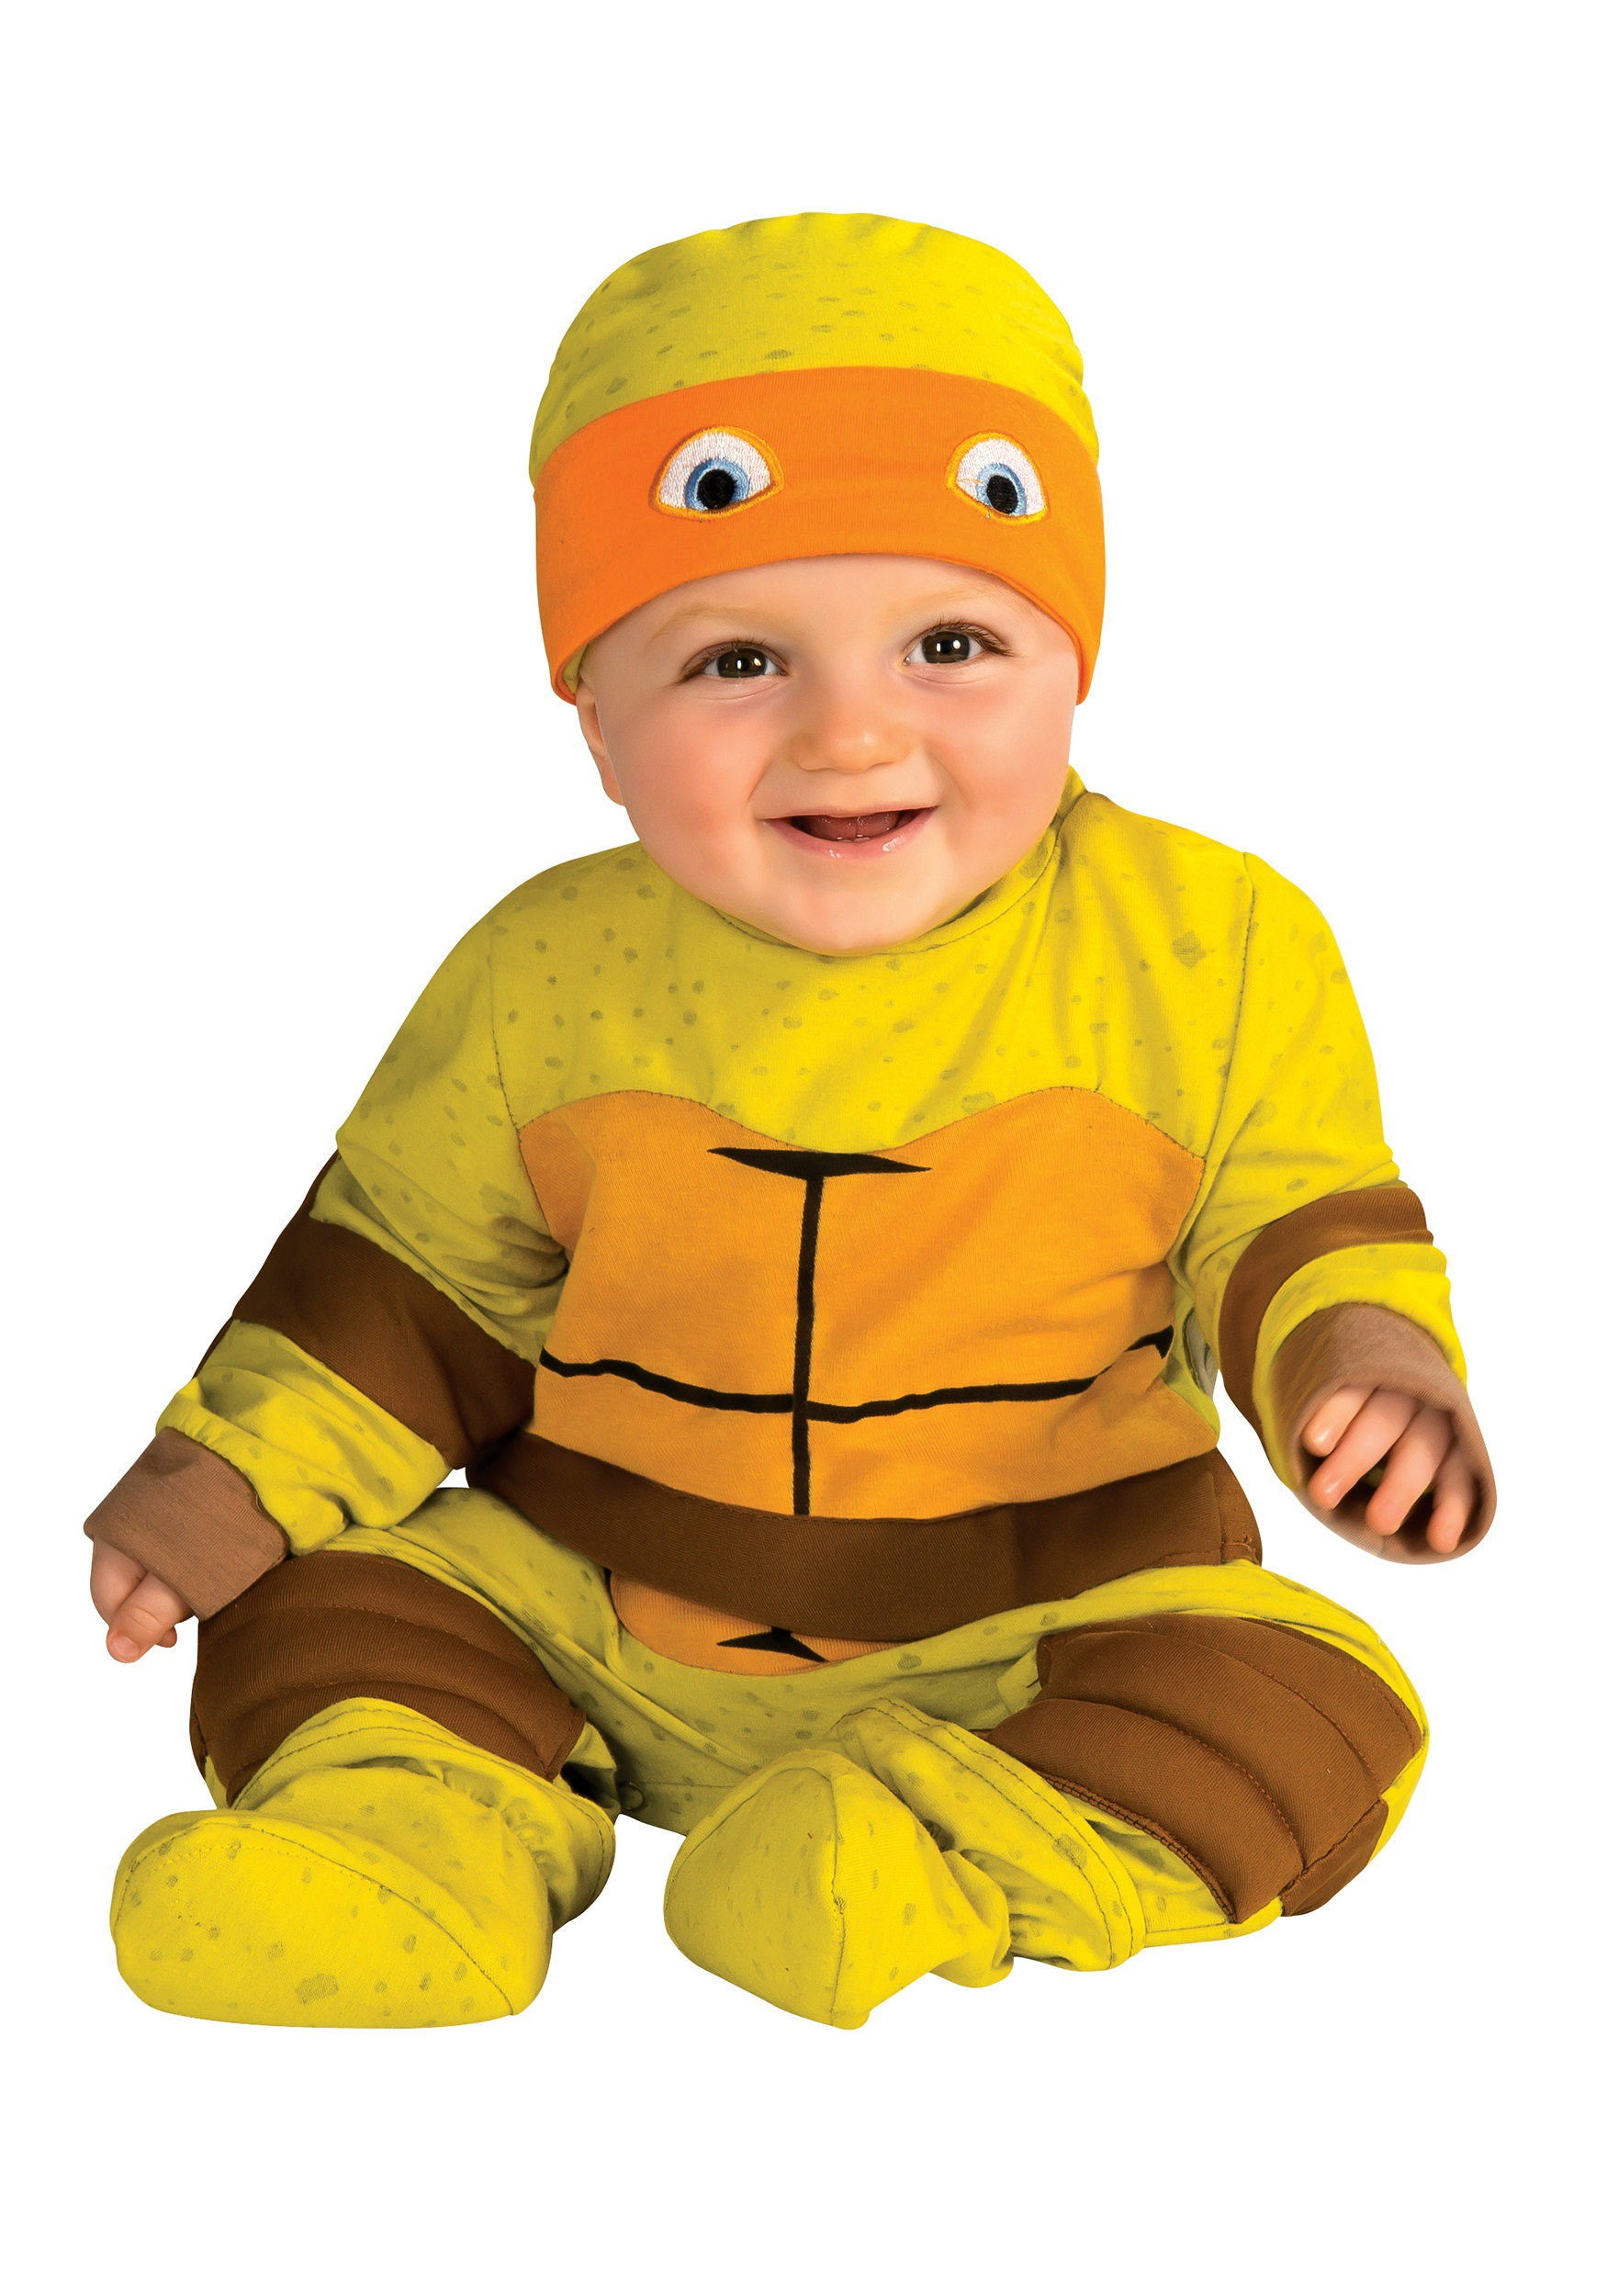 ... Infant Blue Ninja Turtle Jumper ...  sc 1 st  Fun.com & Infant Ninja Turtle Jumper